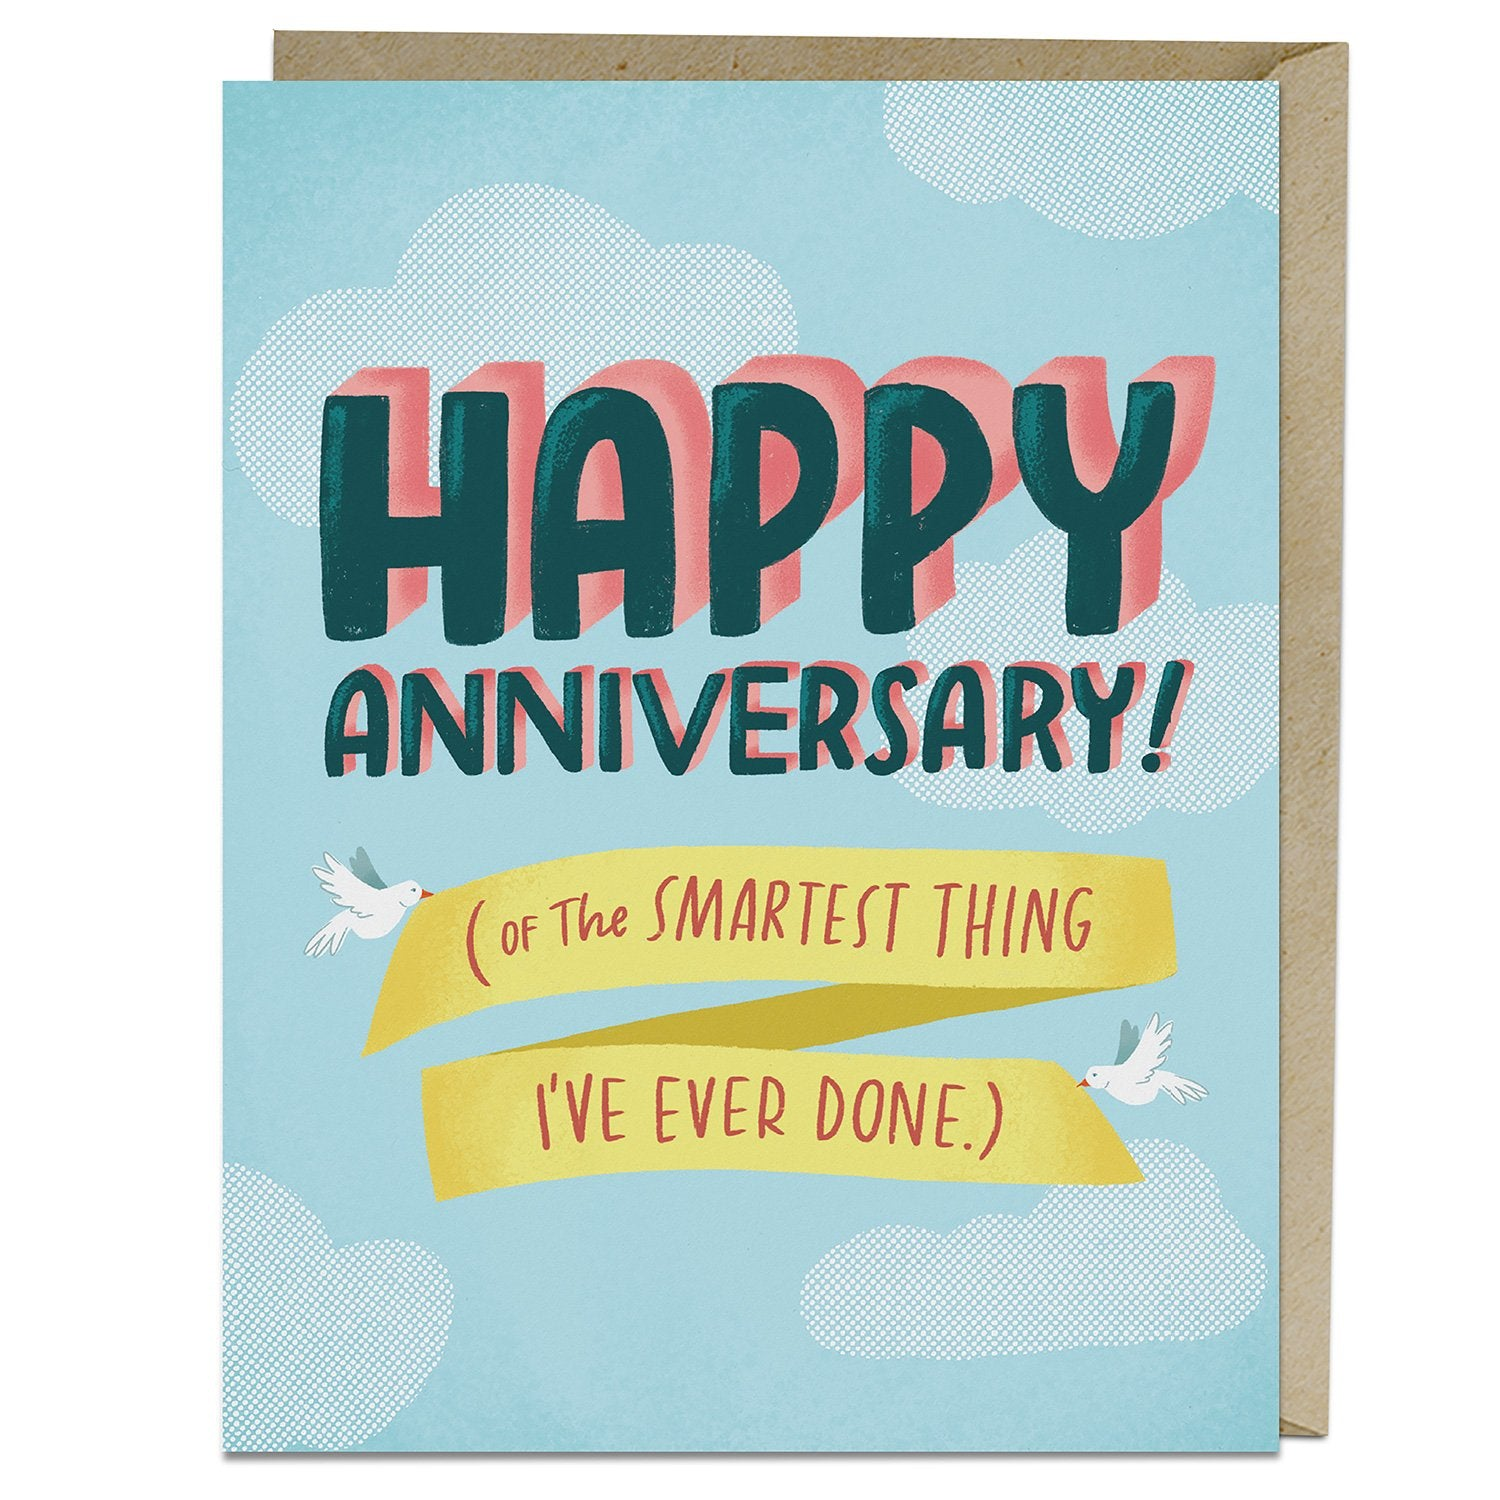 Smartest Thing Anniversary Card